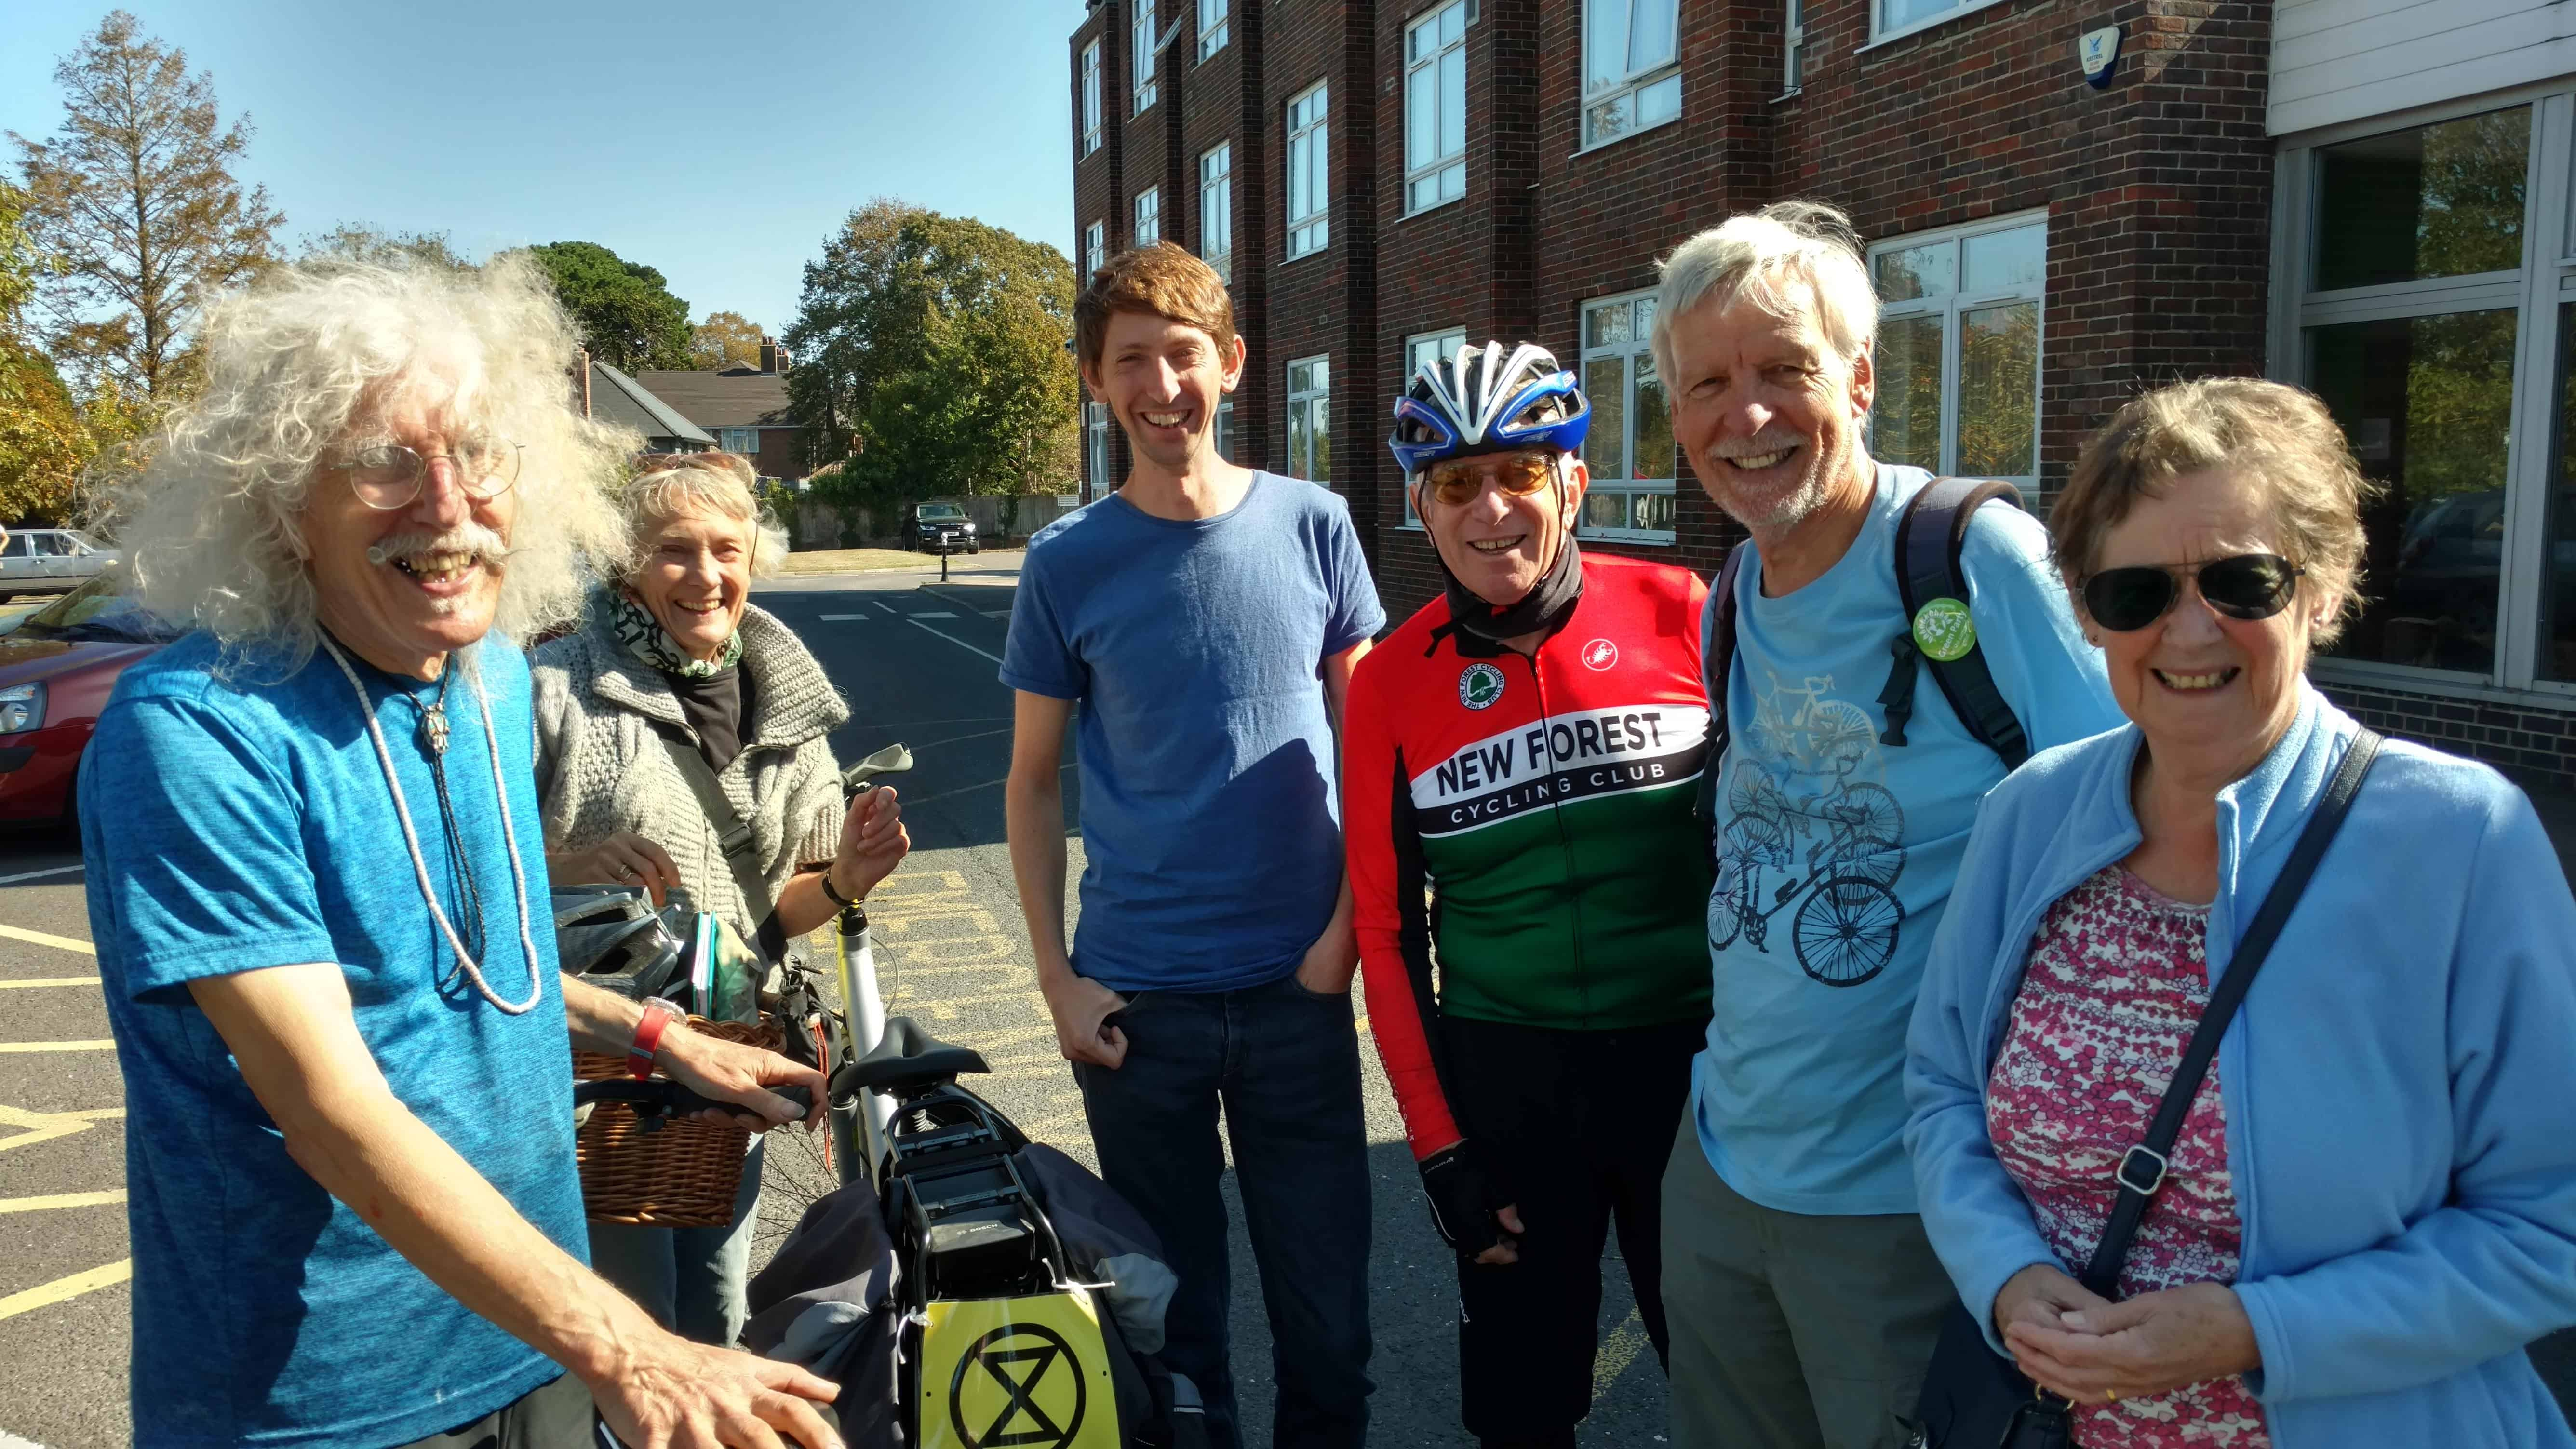 CORE GREEN PARTY MEMBERS FROM THE NEW FOREST